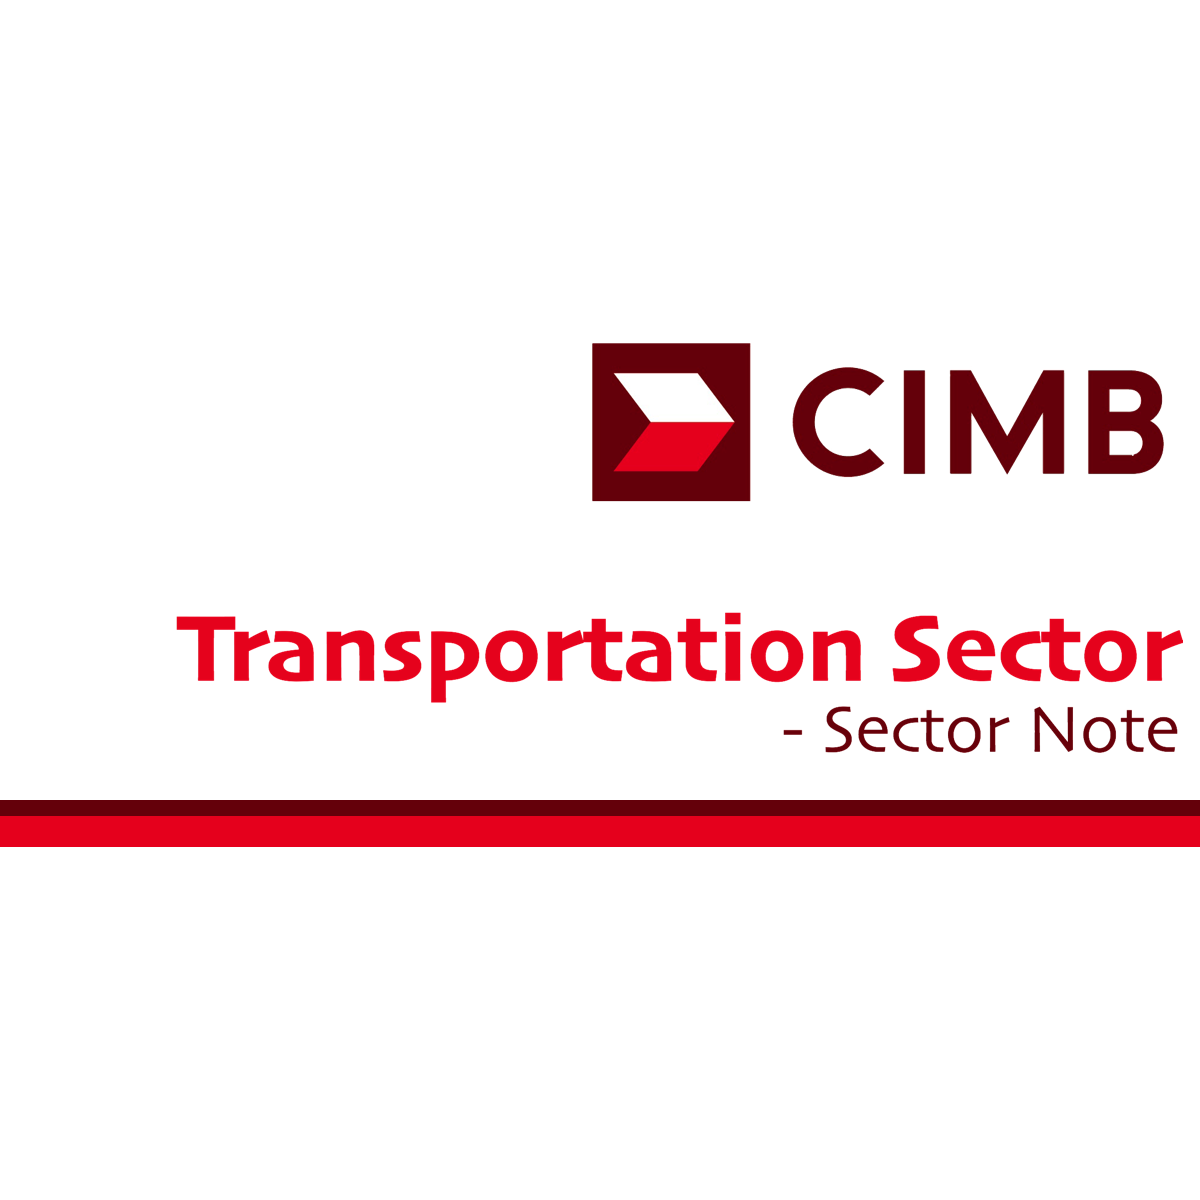 Transport Sector - CIMB Research 2017-05-30: Underweight From Neutral